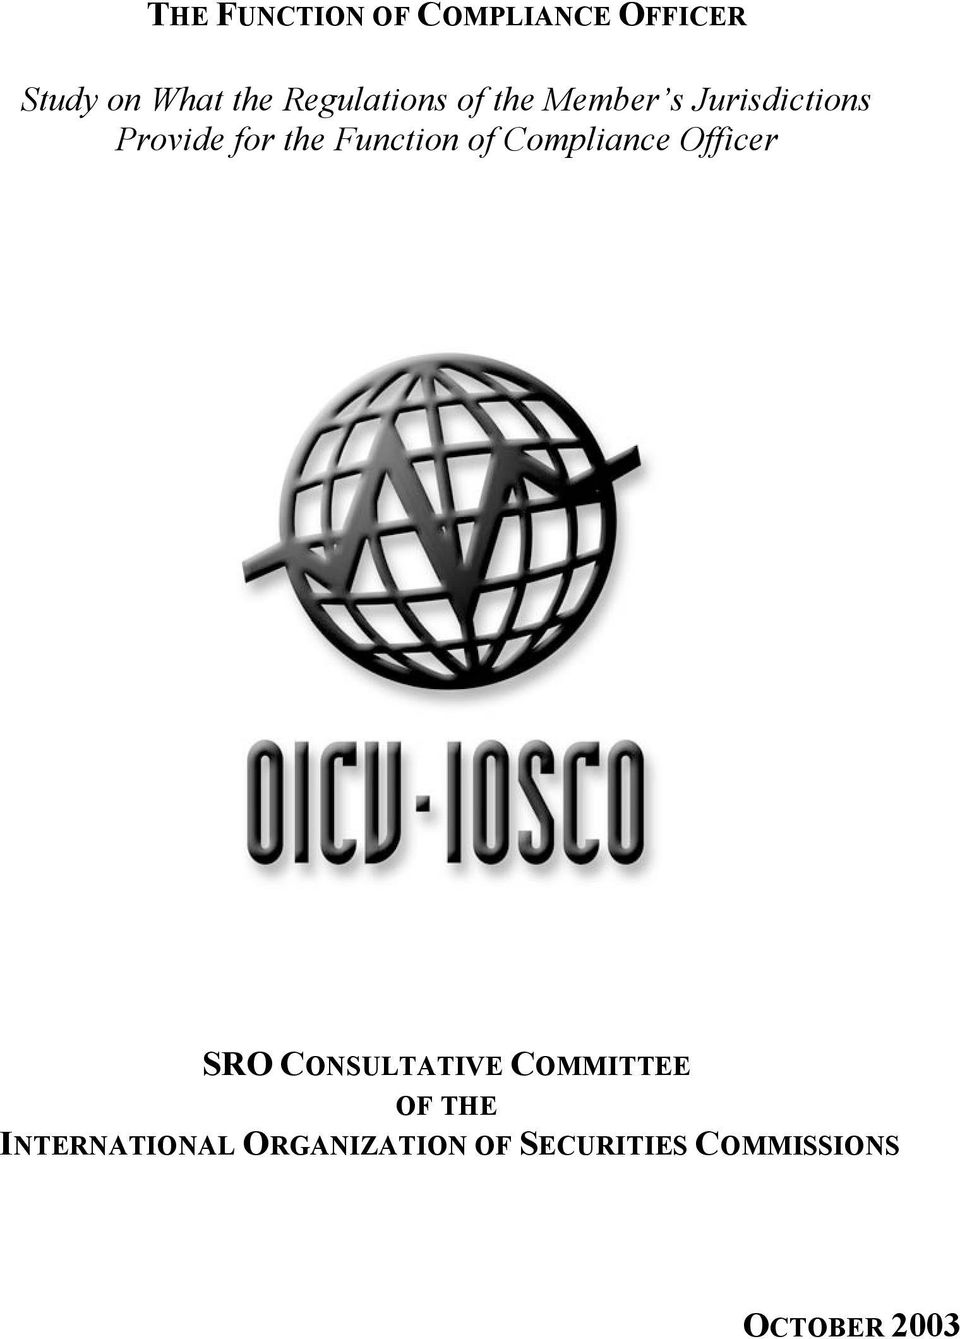 Function of Compliance Officer SRO CONSULTATIVE COMMITTEE OF